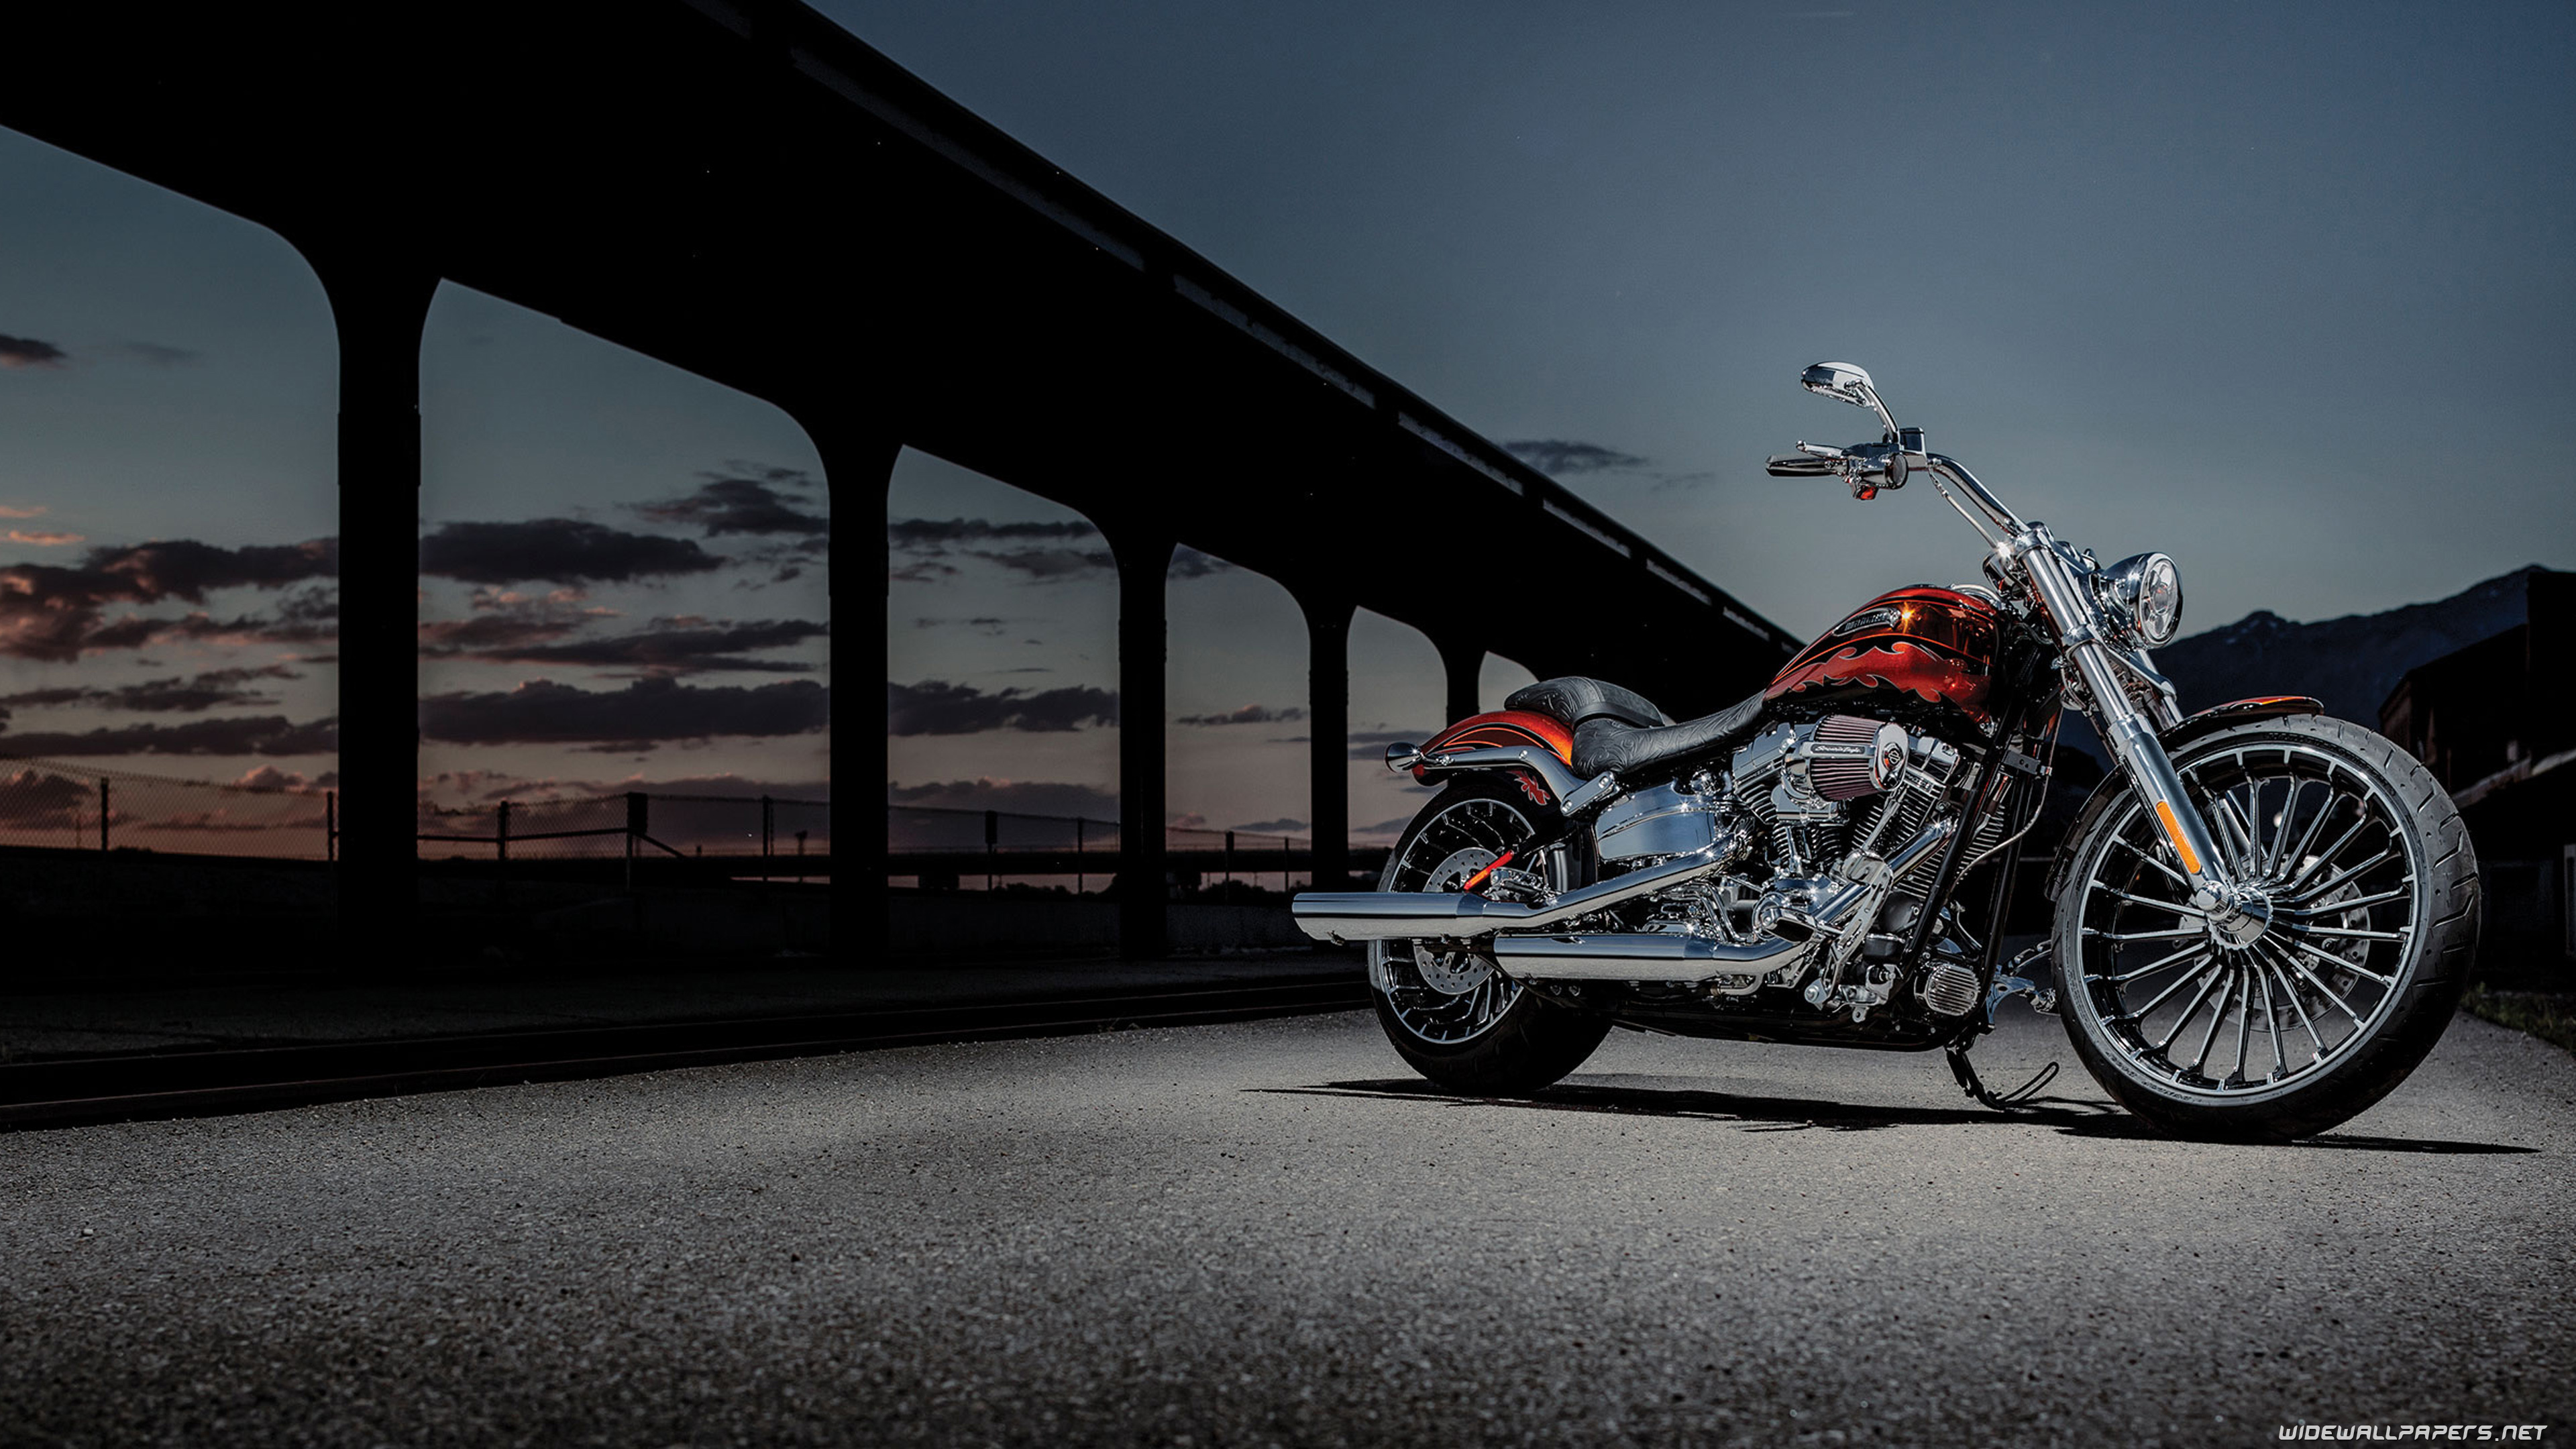 harley-davidson cvo motorcycle desktop wallpapers 4k ultra hd